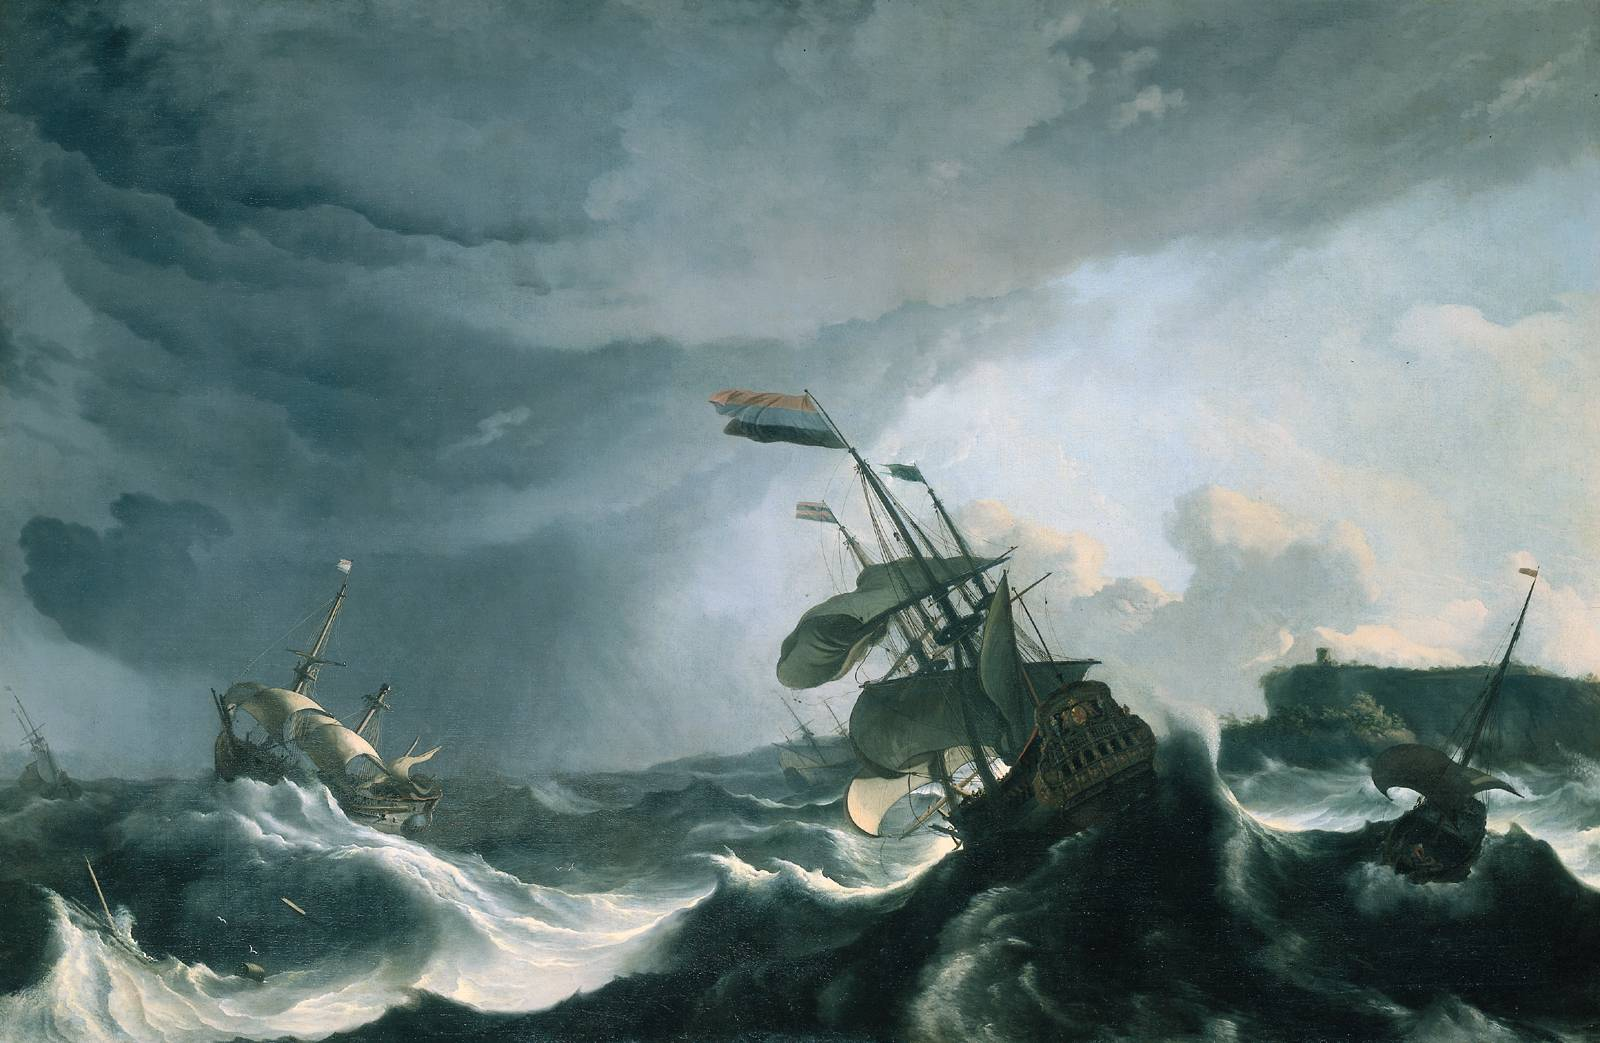 sailing in a heavy storm